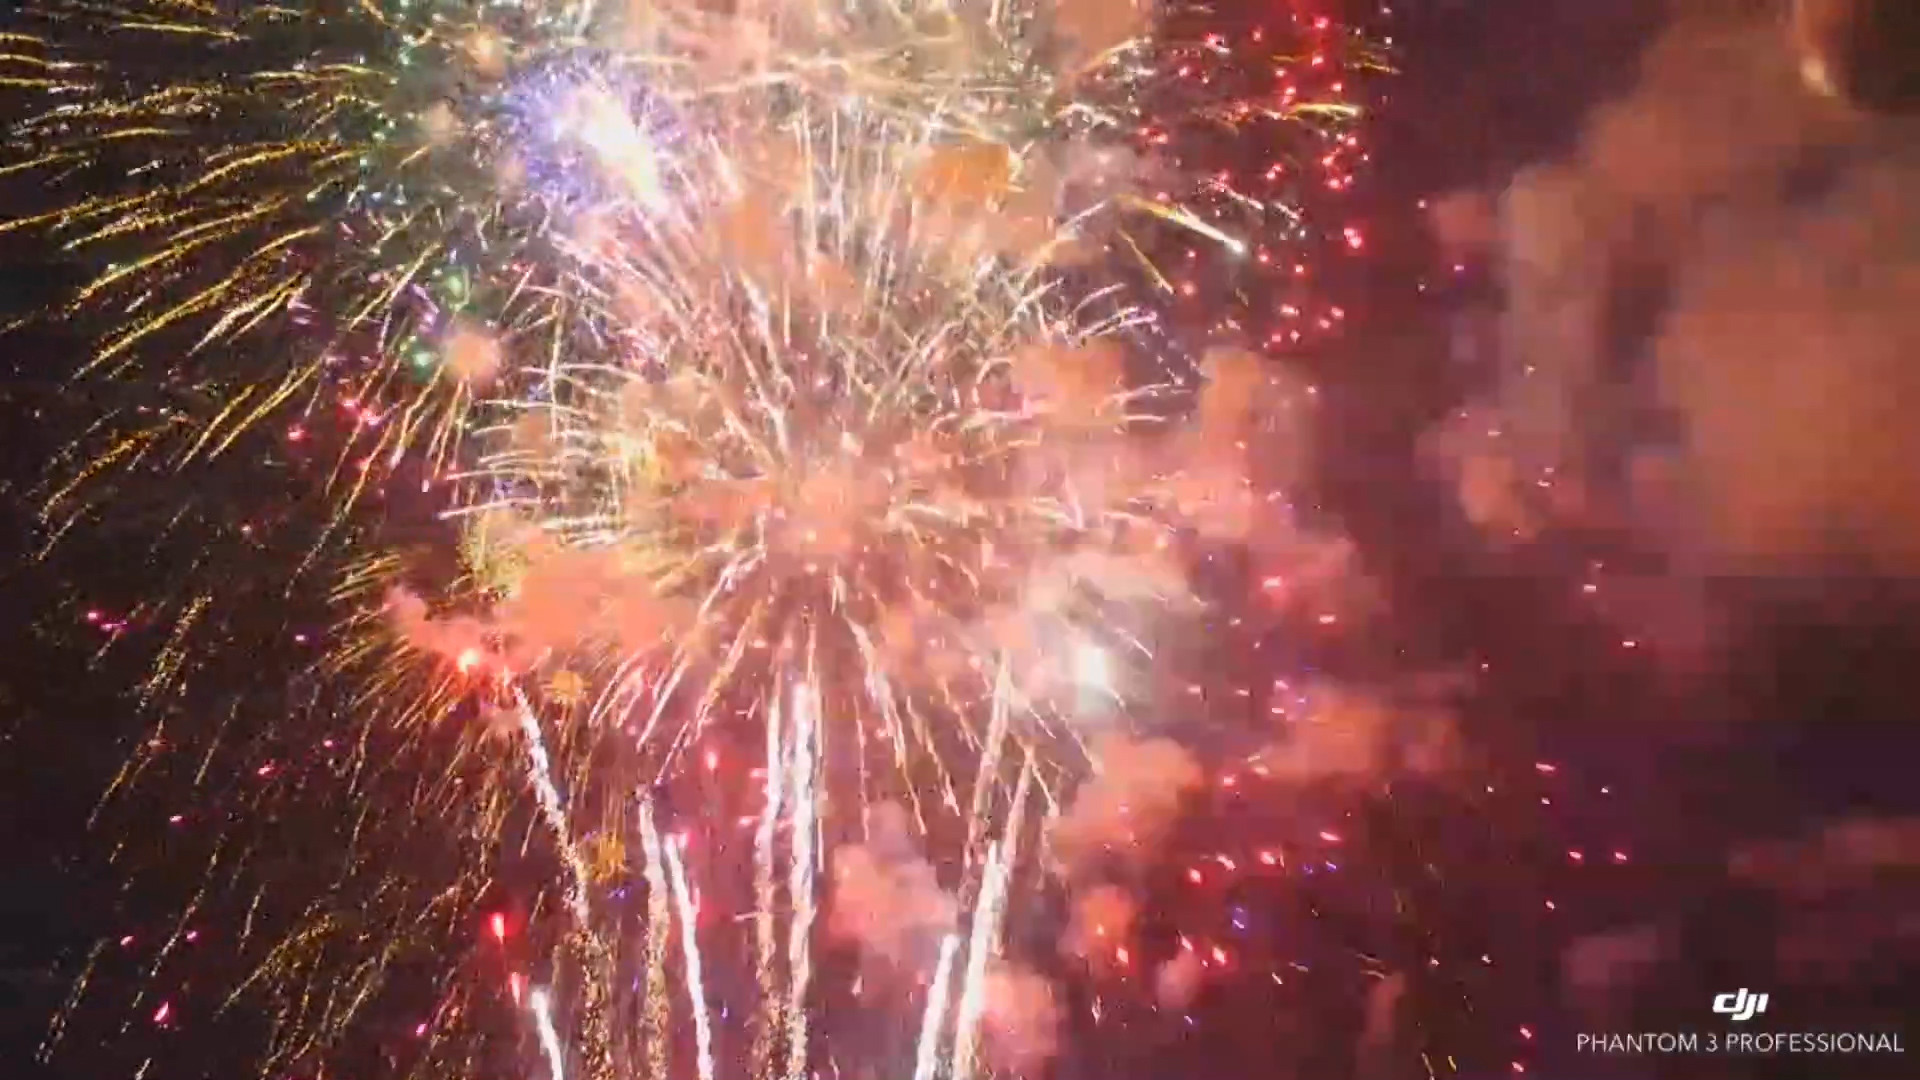 Drones capture new view of 4th of July fireworks - Chicago